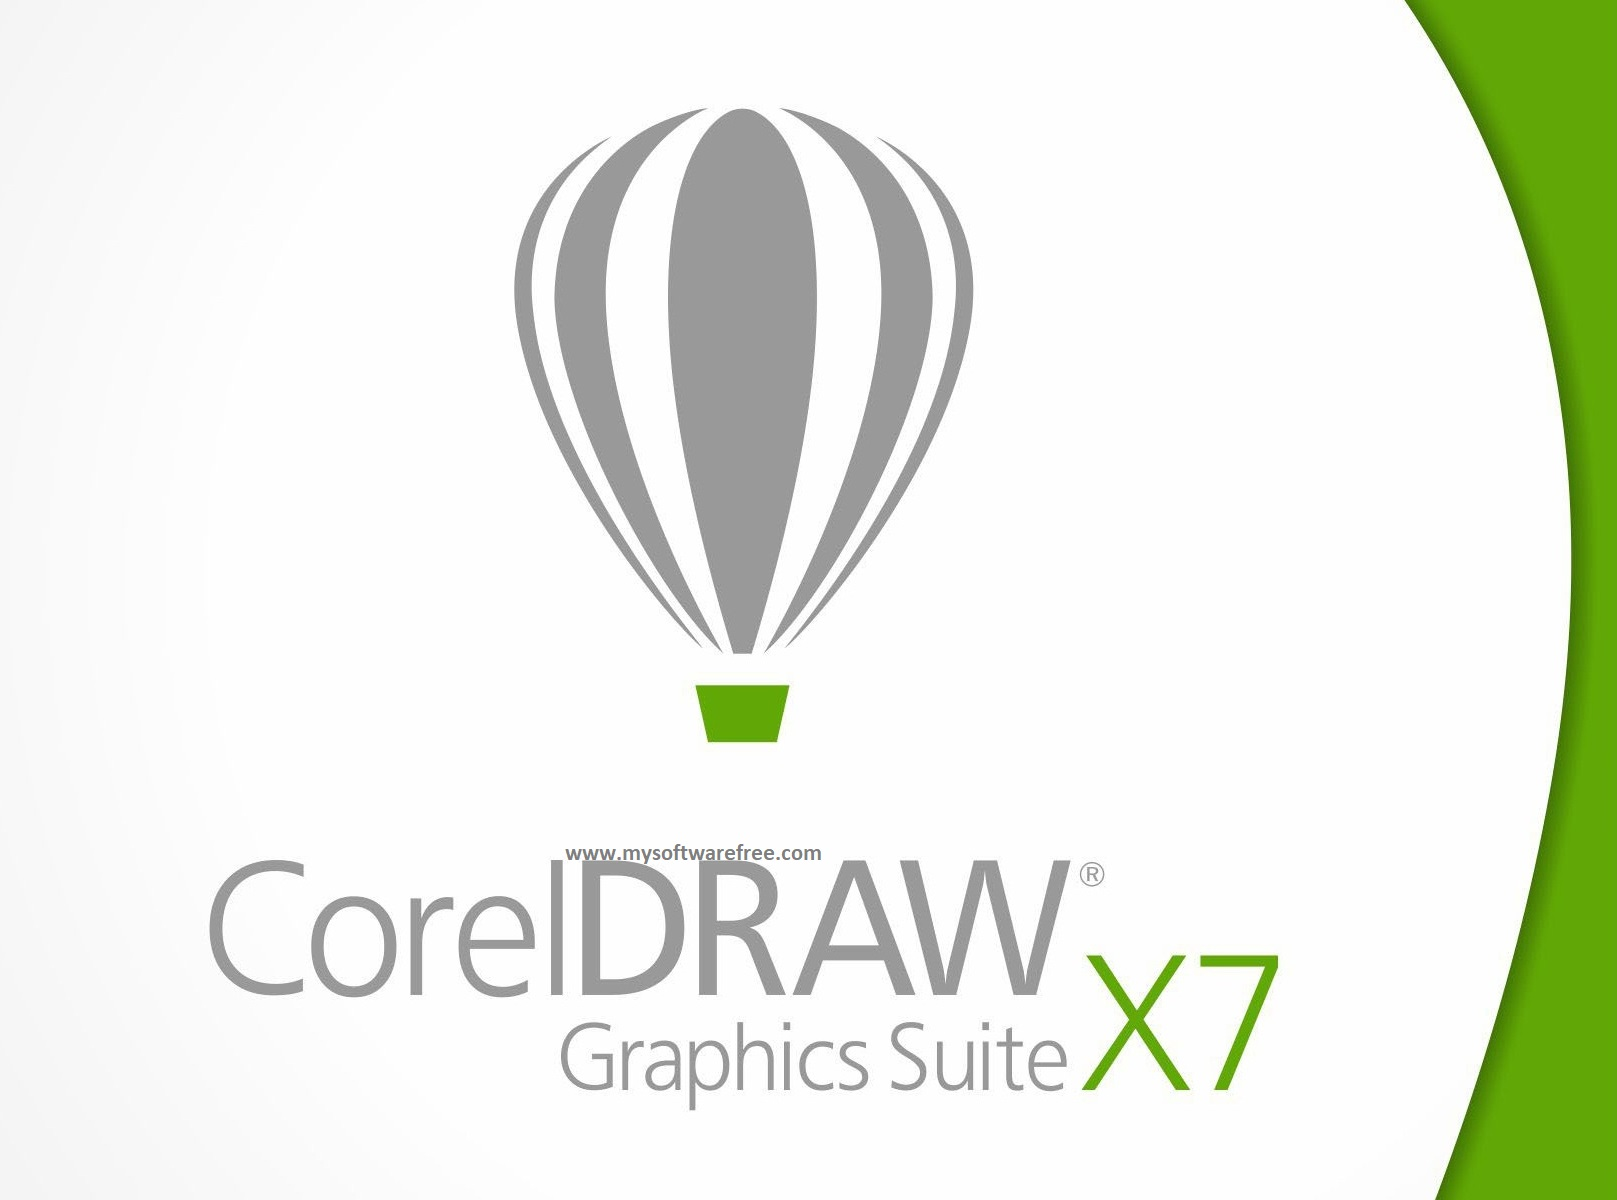 Corel Draw X7 2020 Keygen With Full Crack+Patch Free Download{Latest}